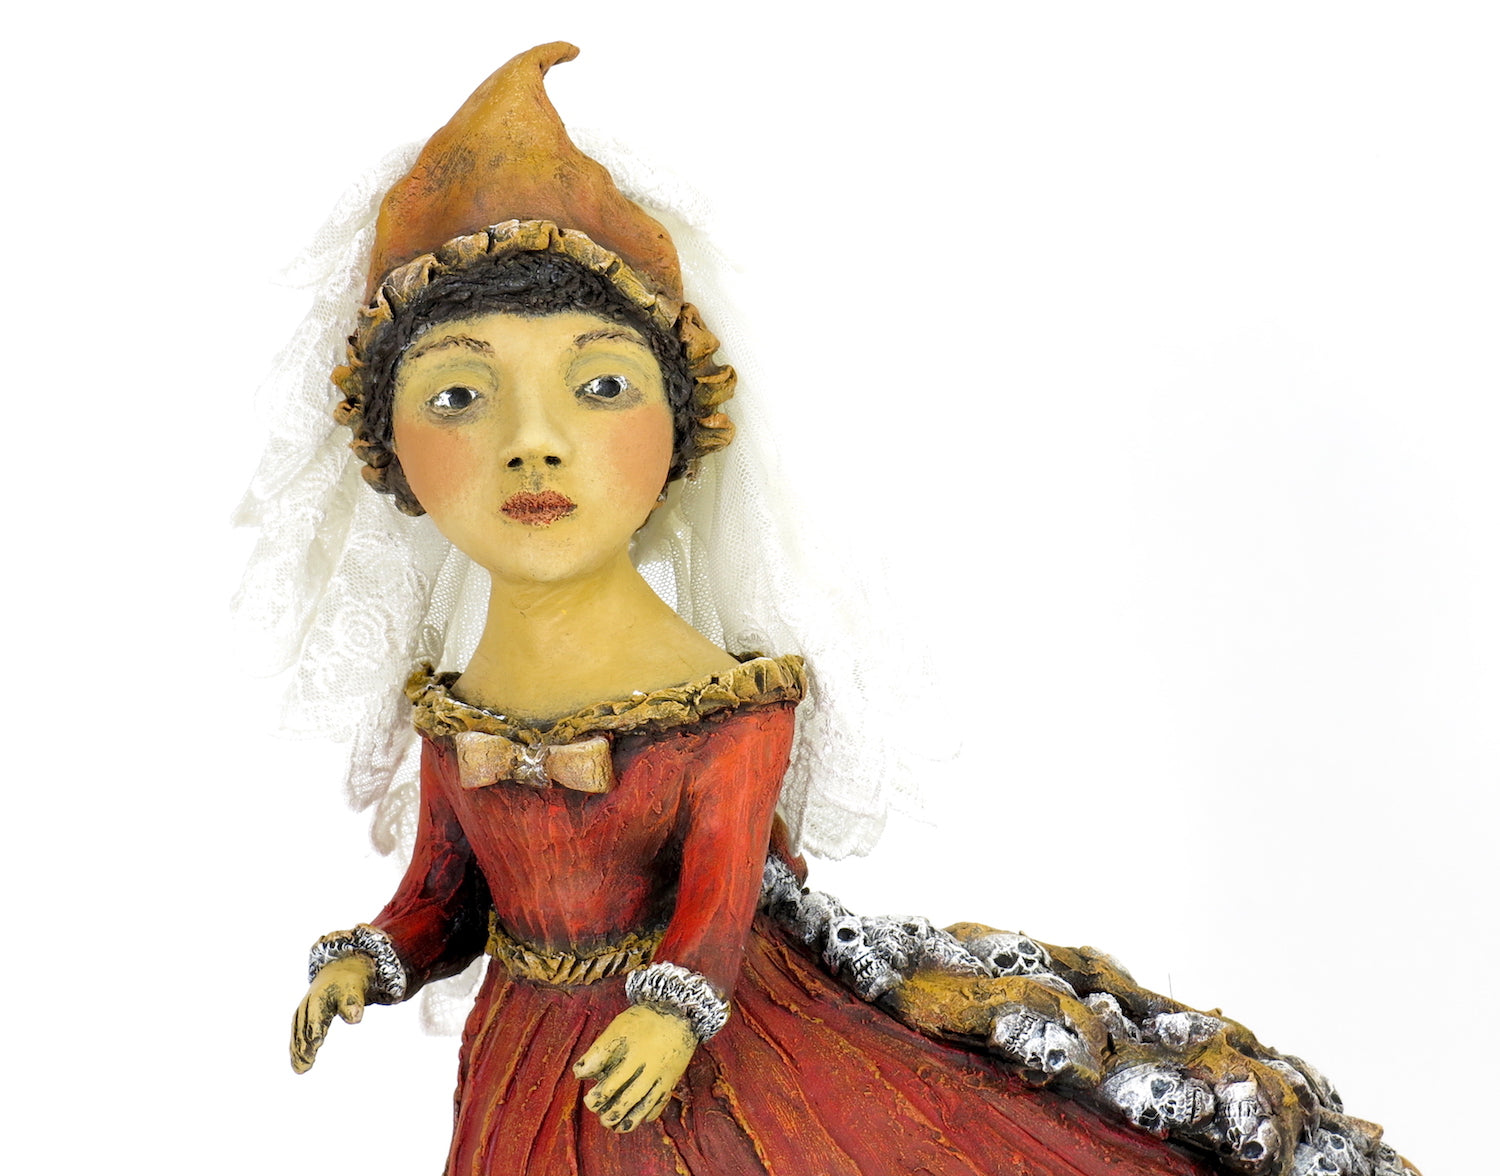 """Gown of Trailing Memories"" Original ceramic sculpture by Jacquline Hurlbert"